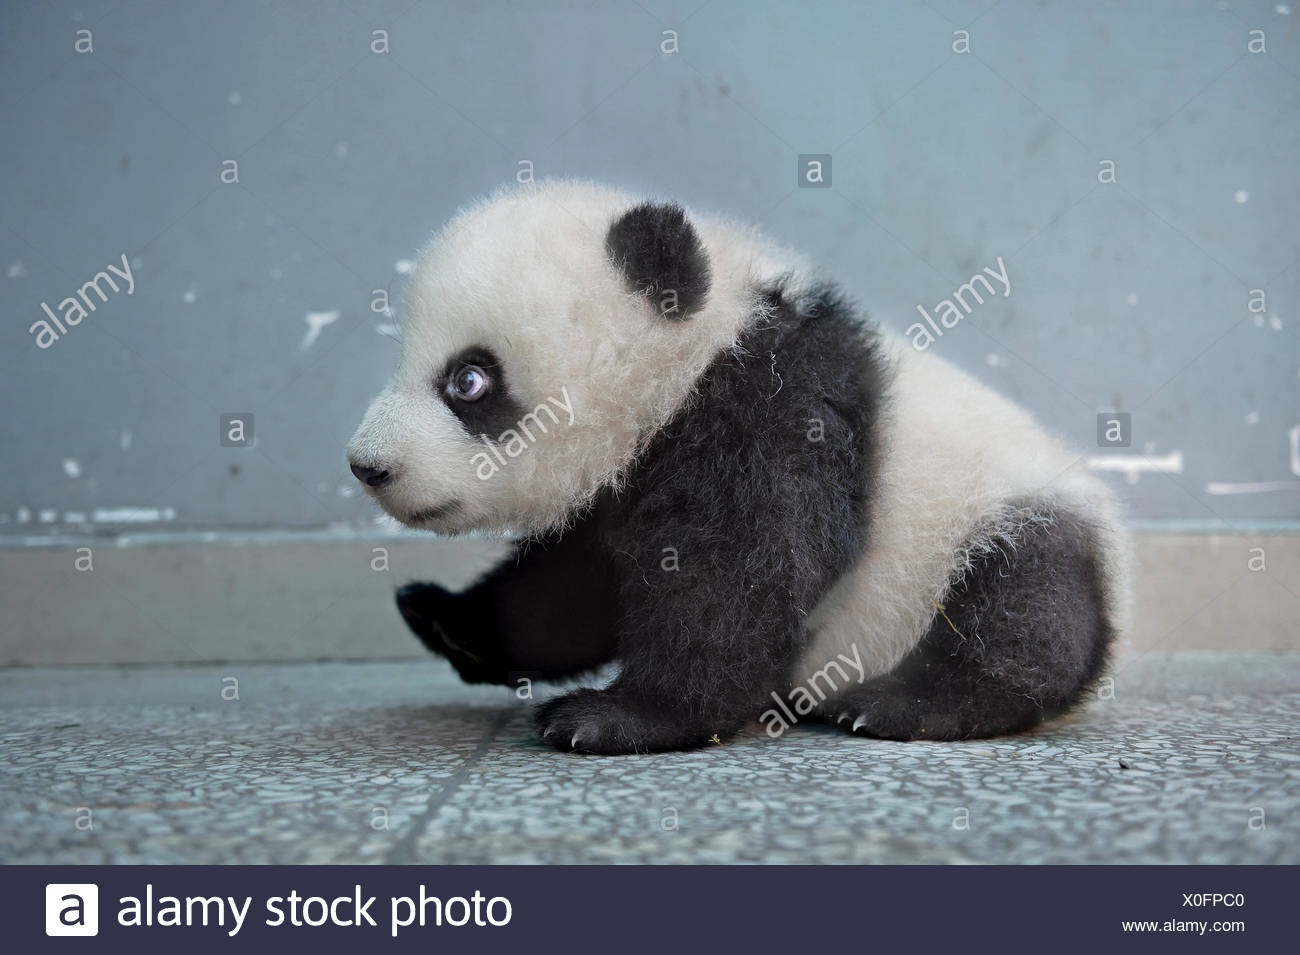 A giant baby panda cub at the Bifengxia Giant Panda Breeding and Research Center. - Stock Image